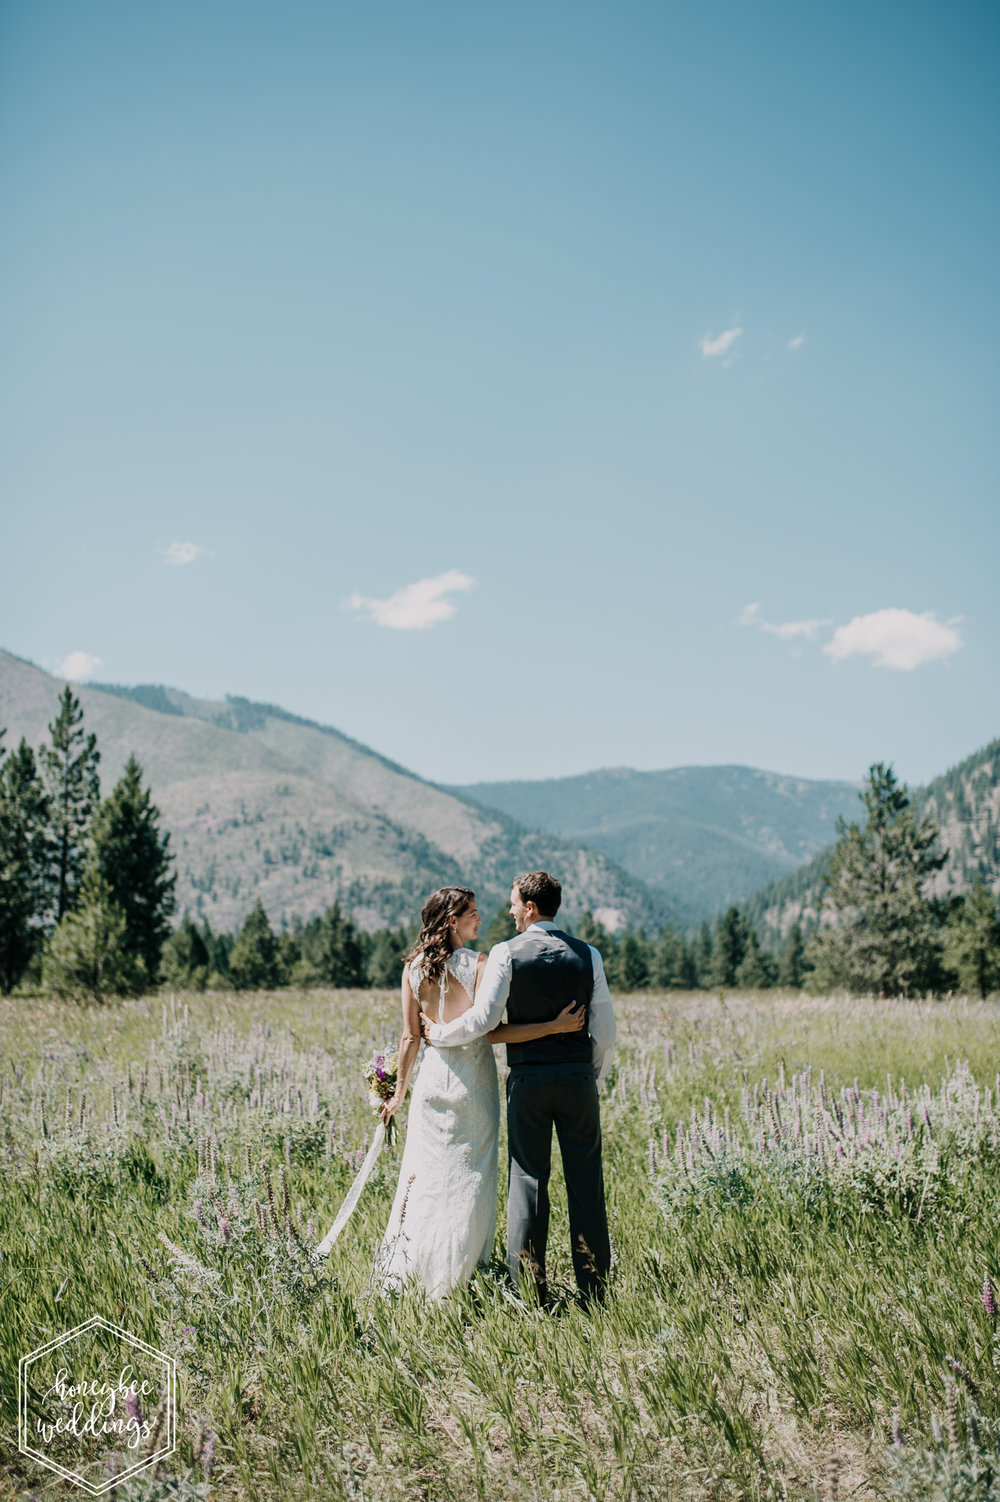 139 White Raven Wedding_Montana Wedding Photographer_Honeybee Weddings_ Meghan Maloney + Arza Hammond 2018-0063.jpg